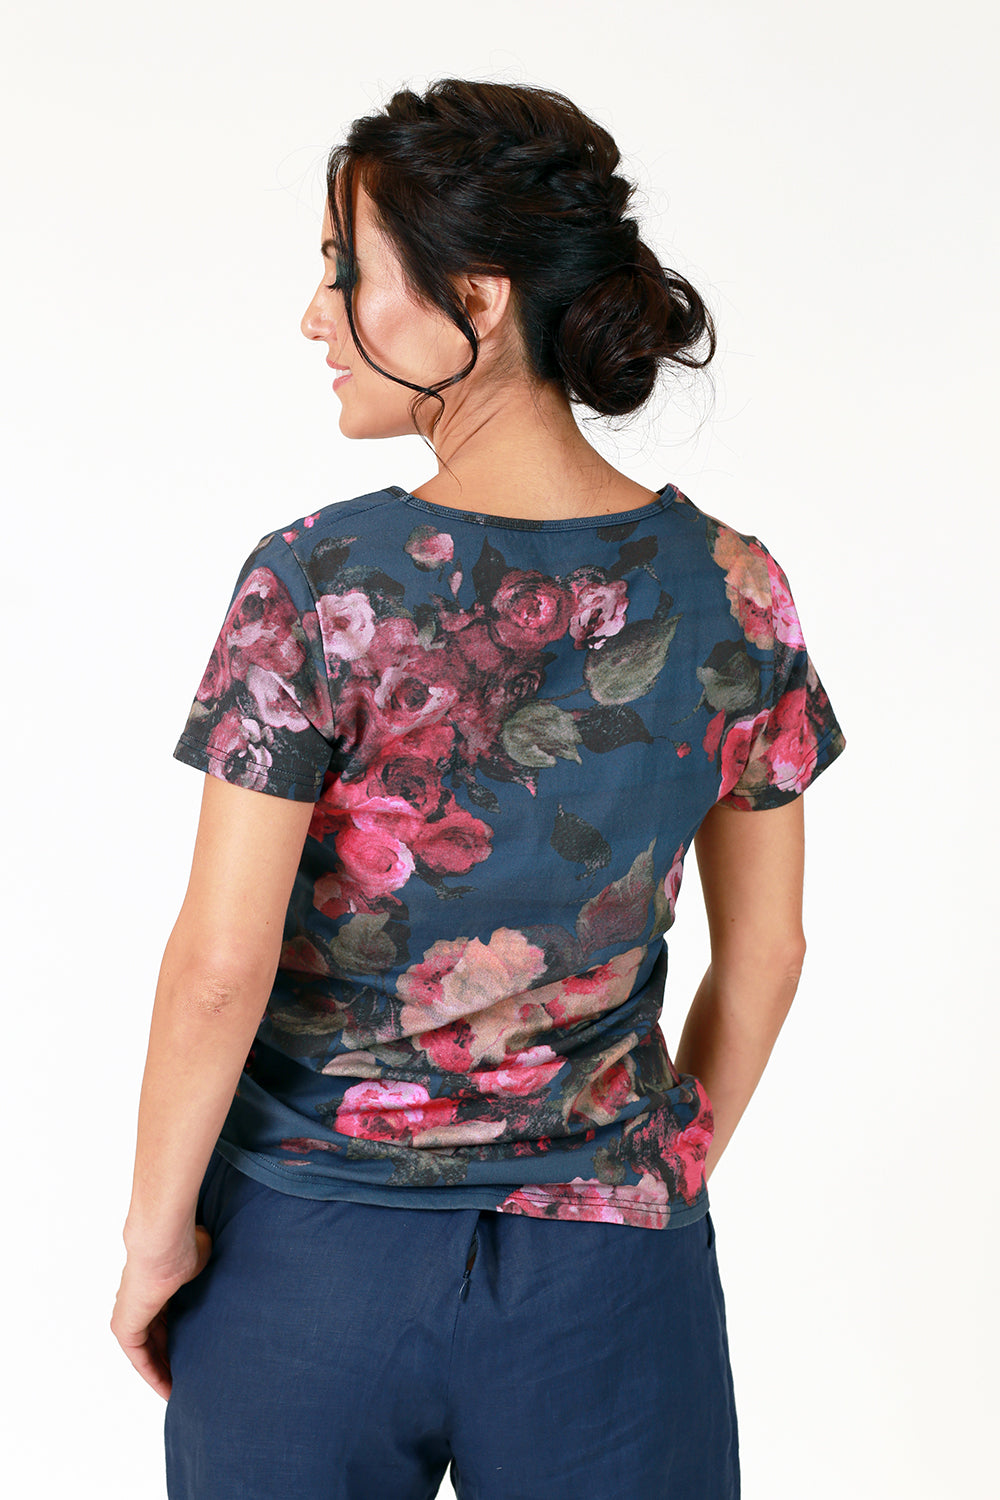 abigail navy v neck tshirt with pink rose floral print tee